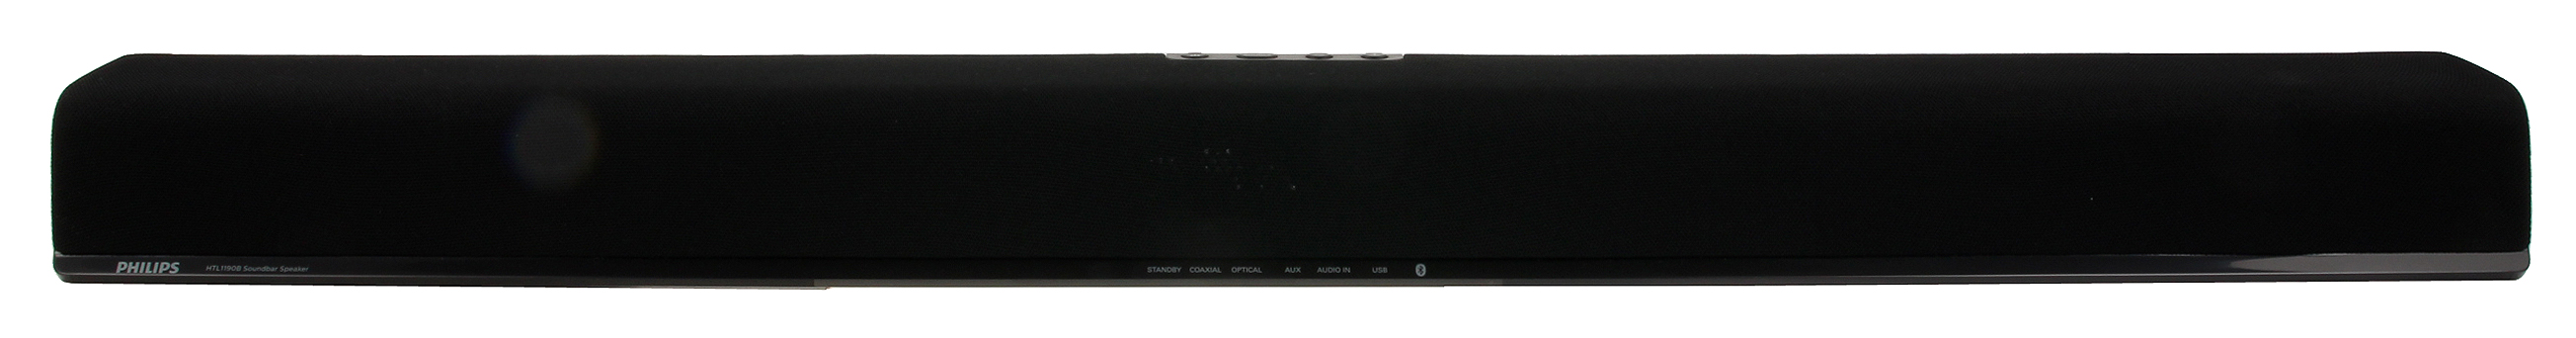 Philips HTL1190B soundbar s technologií bluetooth černé